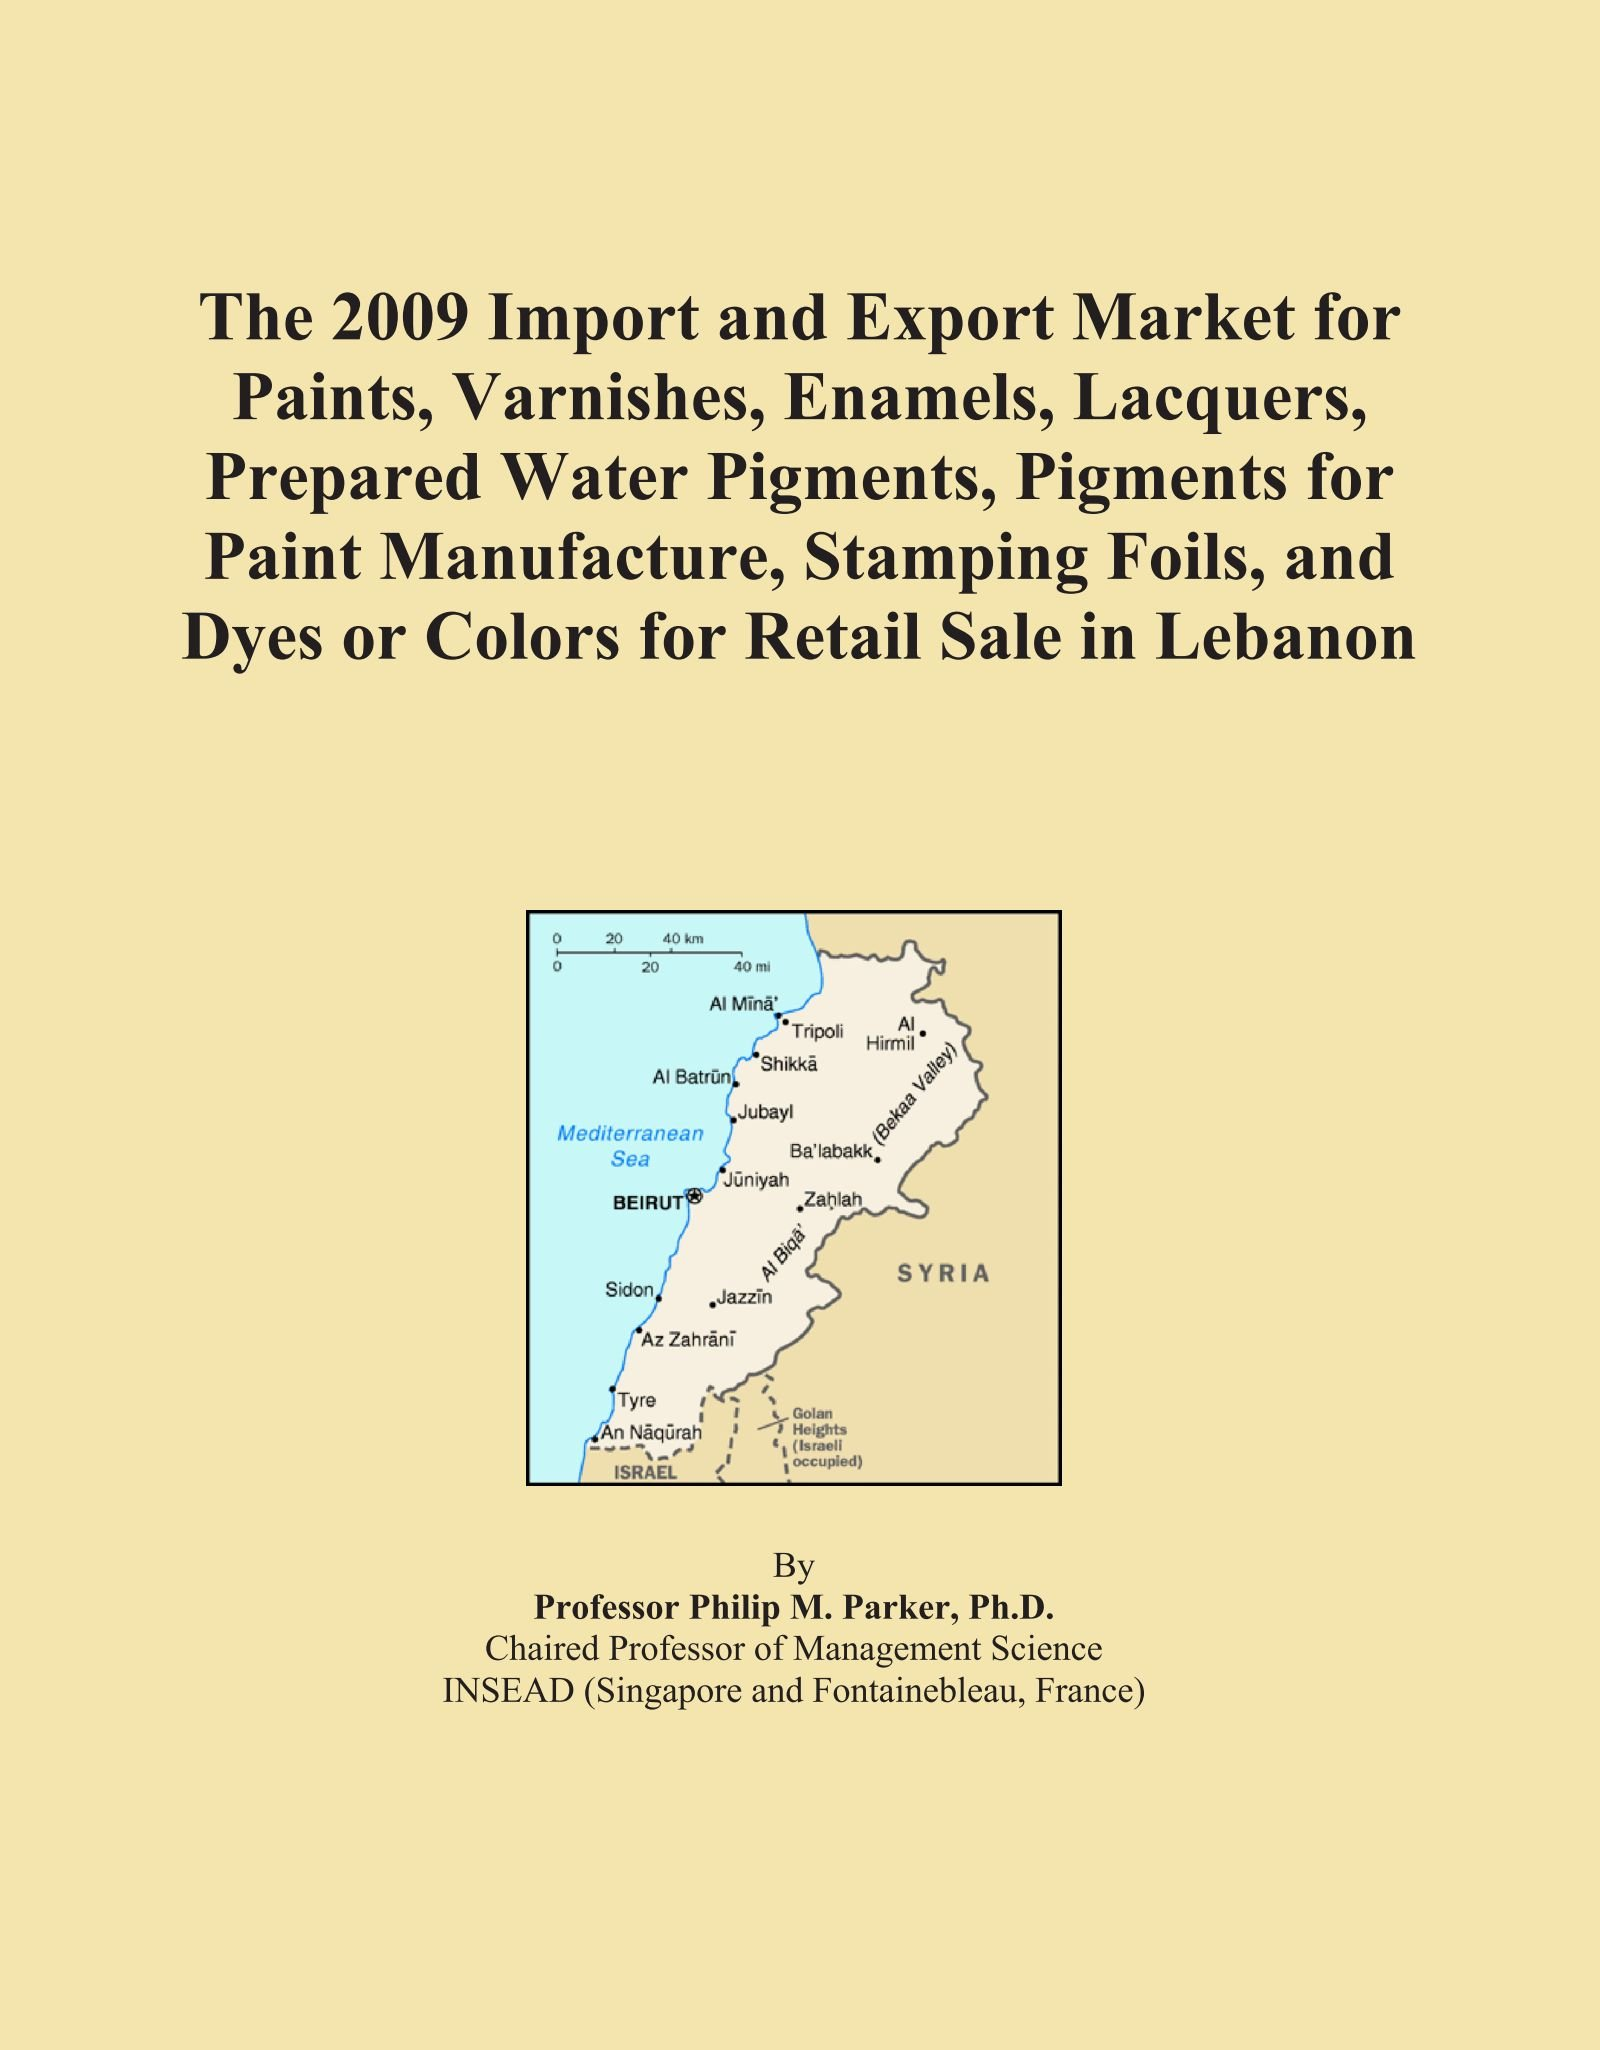 The 2009 Import and Export Market for Paints, Varnishes, Enamels, Lacquers, Prepared Water Pigments, Pigments for Paint Manufacture, Stamping Foils, and Dyes or Colors for Retail Sale in Lebanon pdf